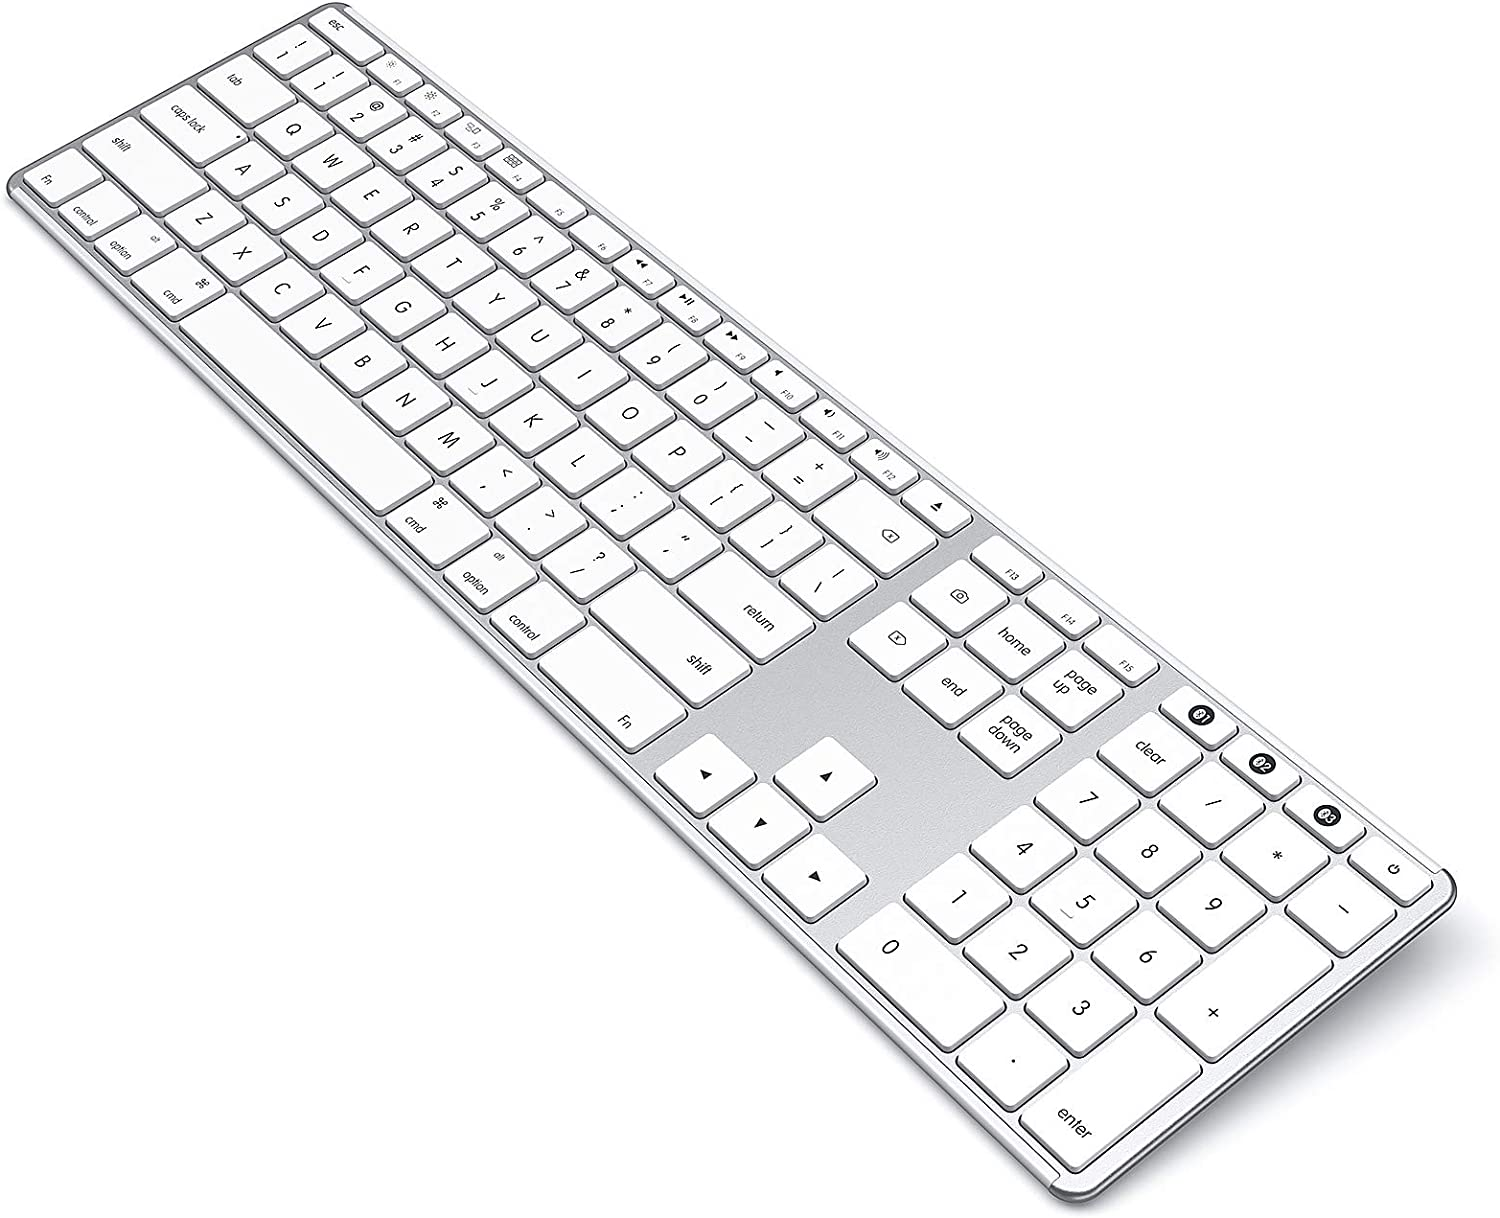 seenda Wireless Keyboard Compatible with Apple Mac - Multi-Device Bluetooth Keyboards Full Size Rechargeable Compatible for MacBook Pro/Air, iMac, iPhone, New iPad - White & Silver